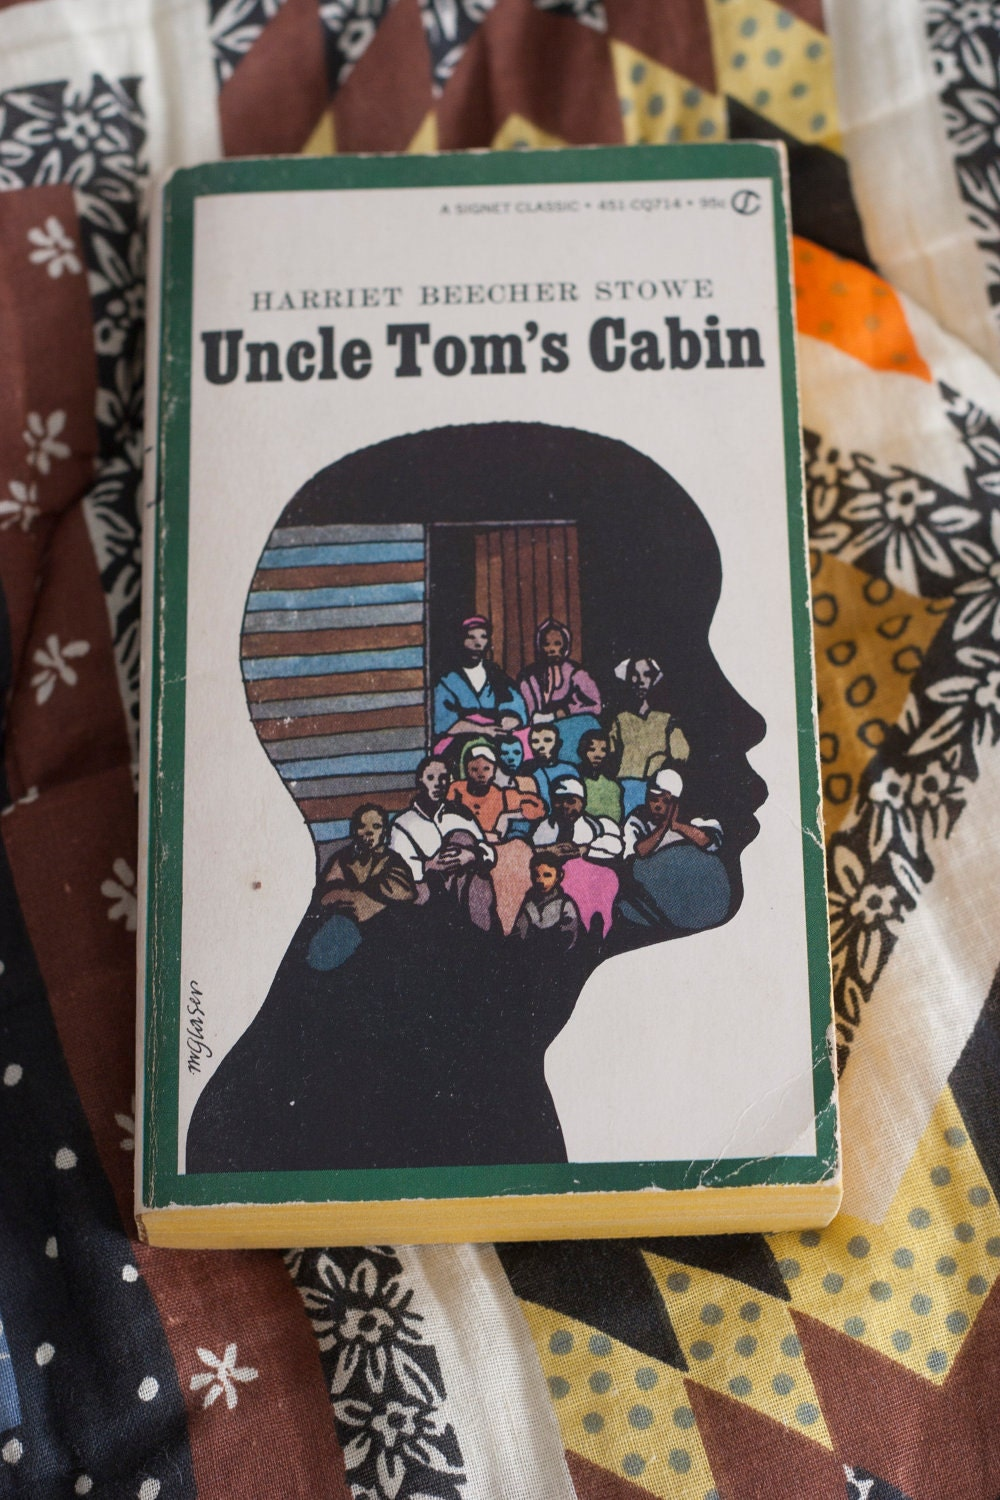 uncle tom's cabin synopsis Download a key to uncle tom's cabin part 1 free in pdf & epub format download harriet beecher stowe,'s a key to uncle tom's cabin part 1 for your kindle, tablet, ipad, pc or mobile.